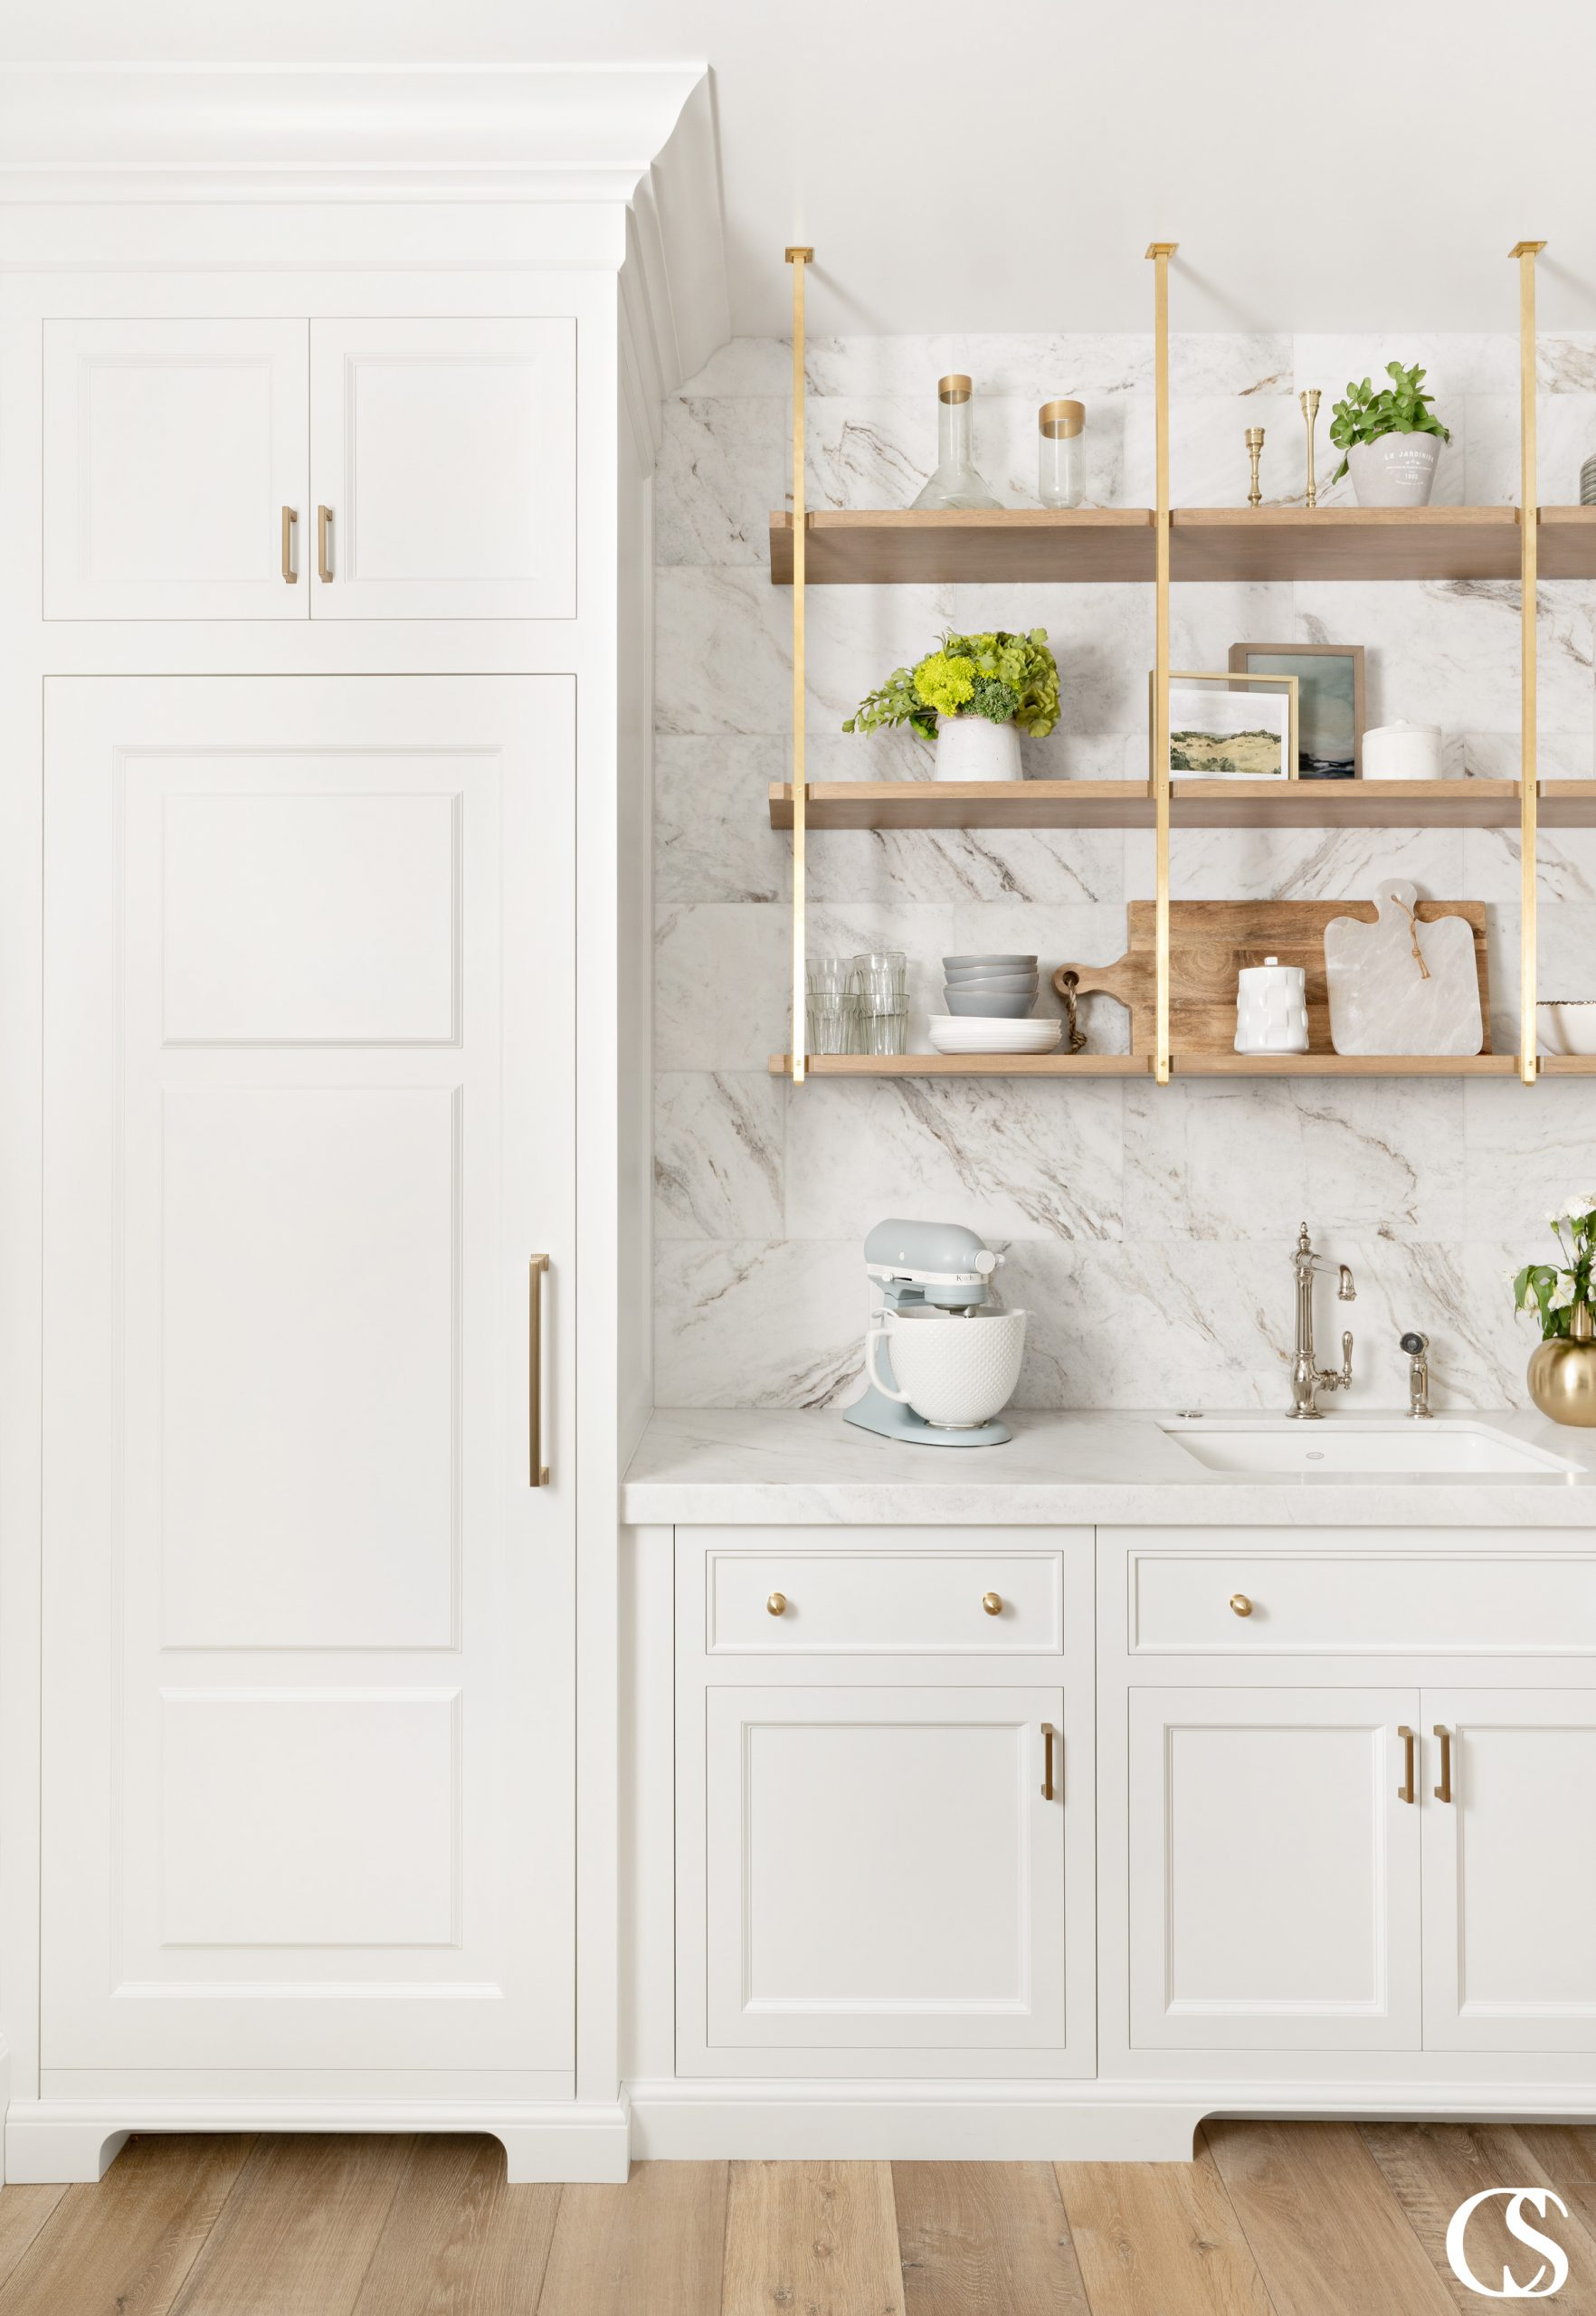 Custom pantry design will allow you to make a beautiful space for storing kitchen items that doesn't have to feel like a grocery store stockroom.